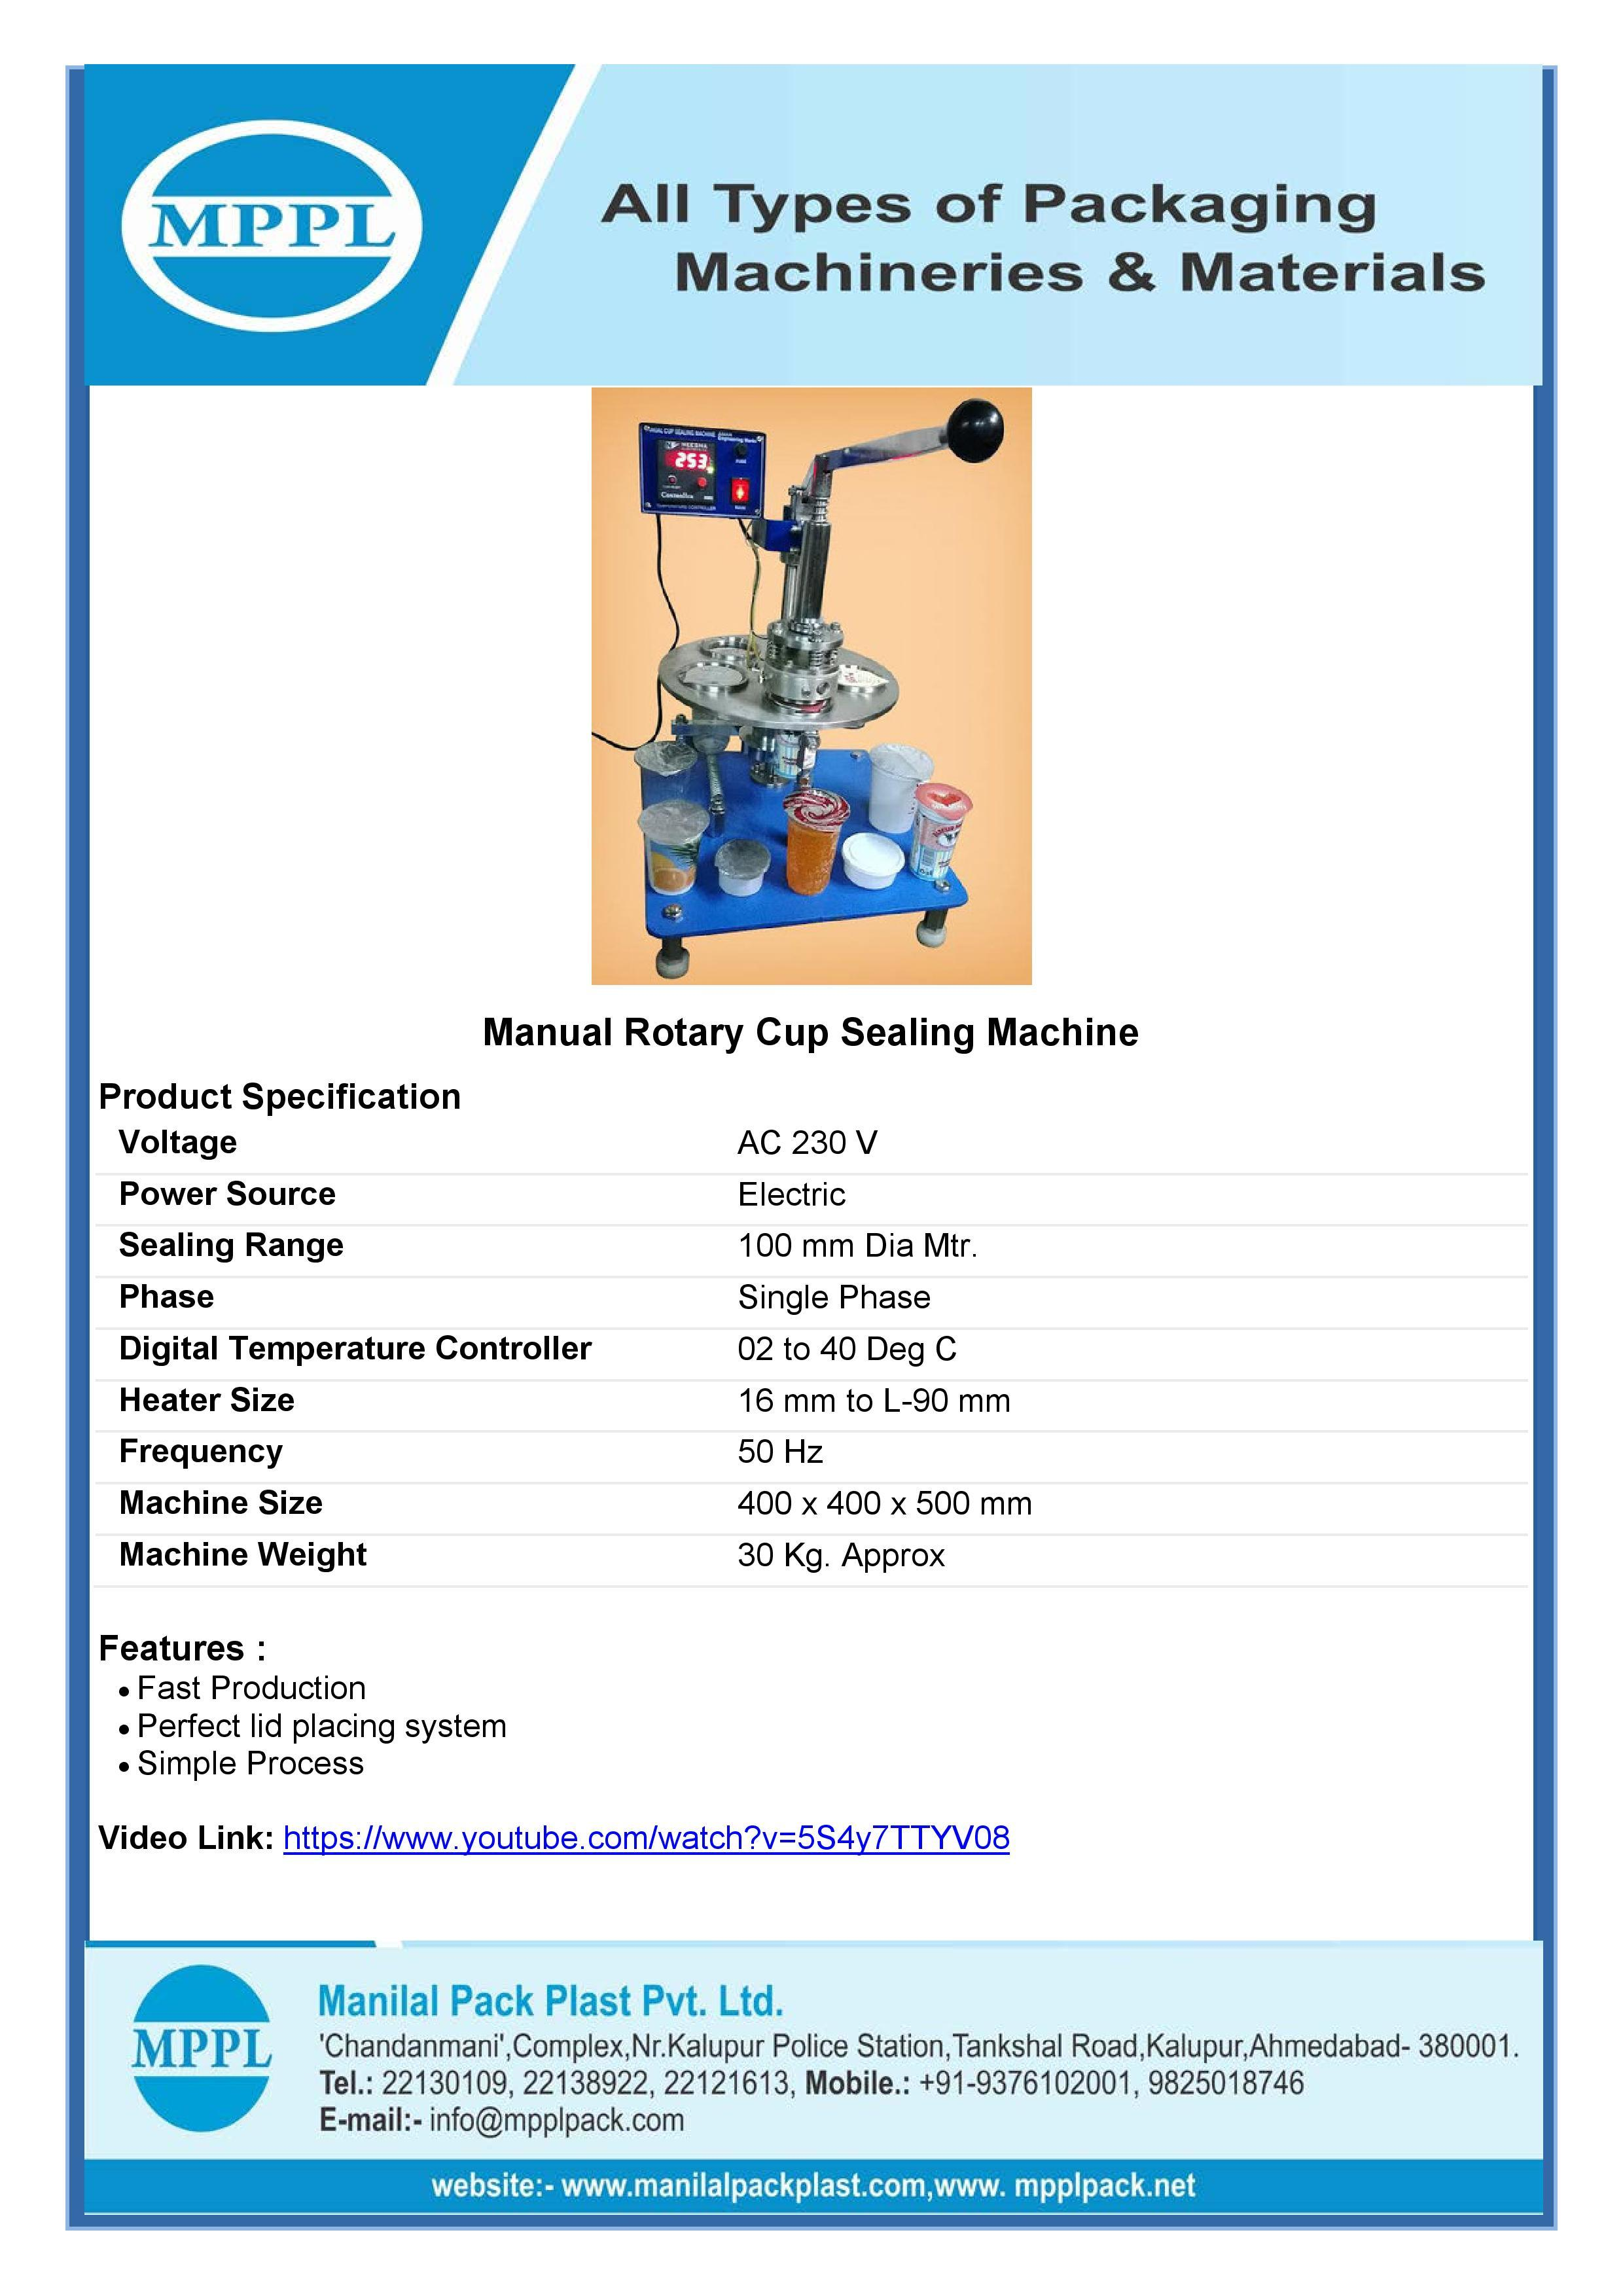 Manual Rotary Cup Sealing Machine